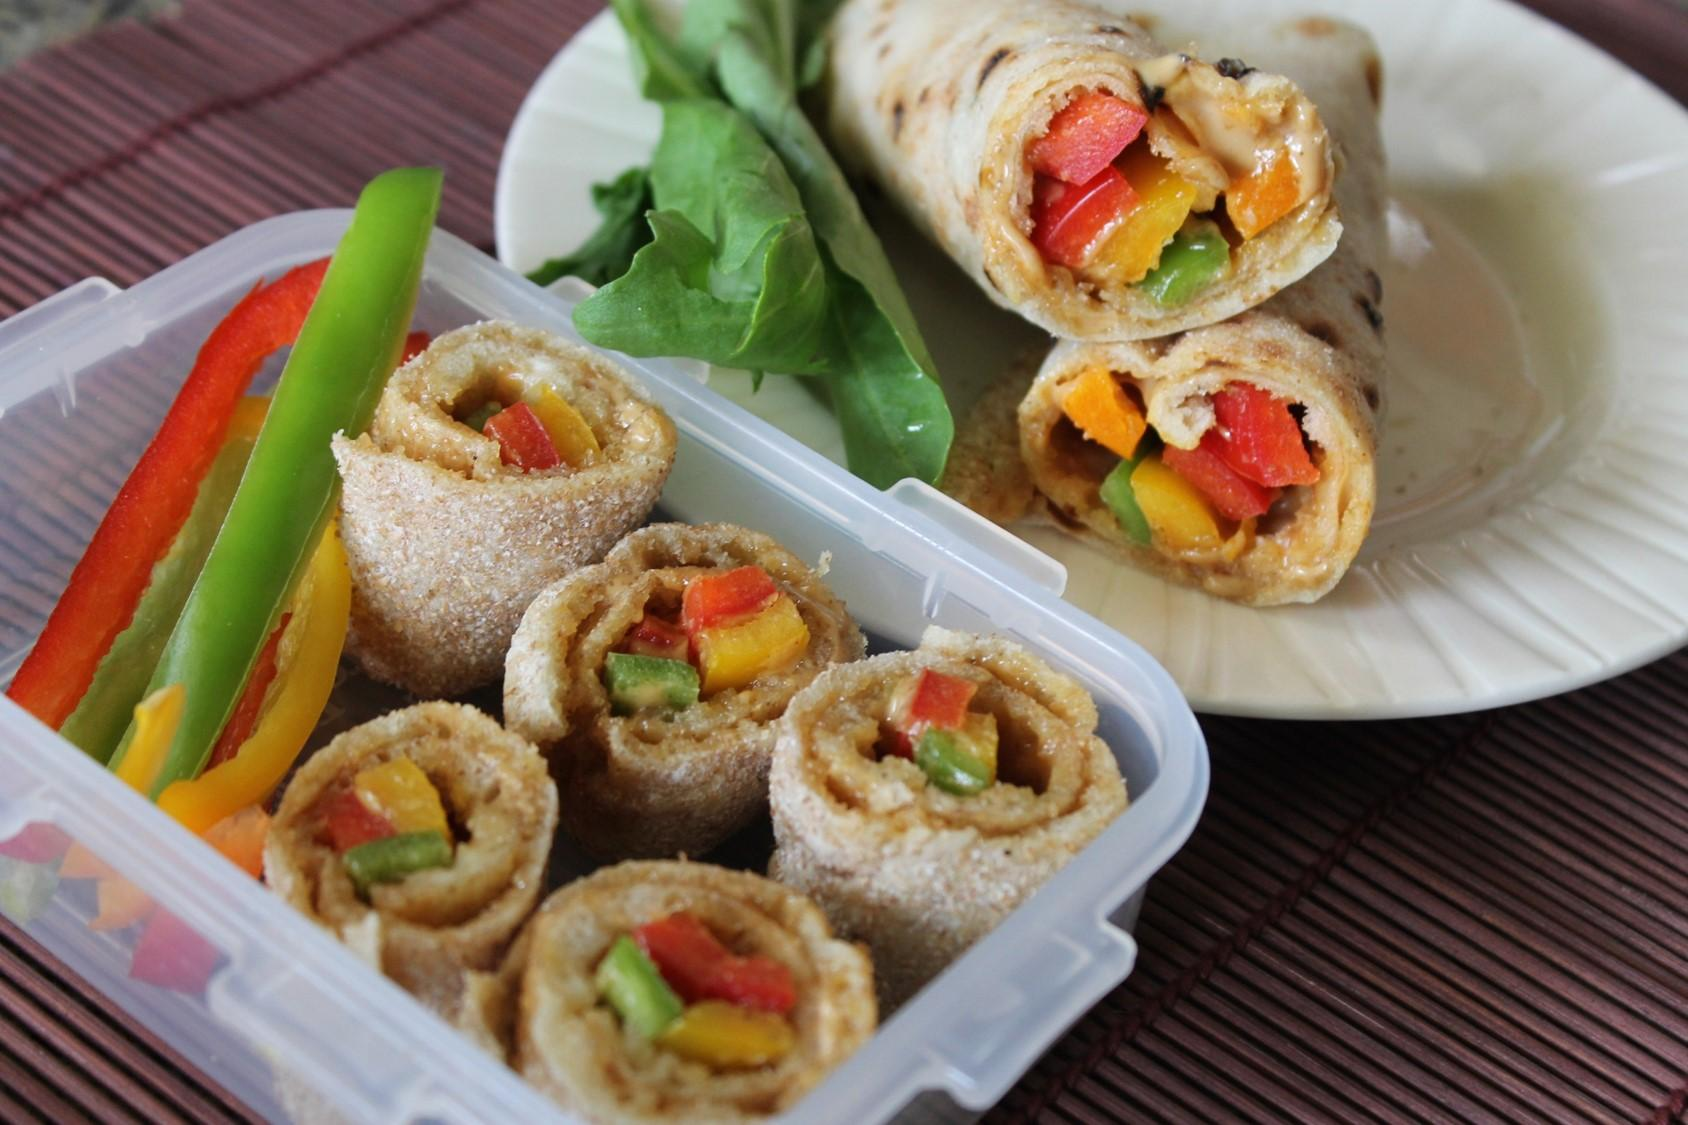 Peanut Butter & Coloured Pepper Baladi Wrap'